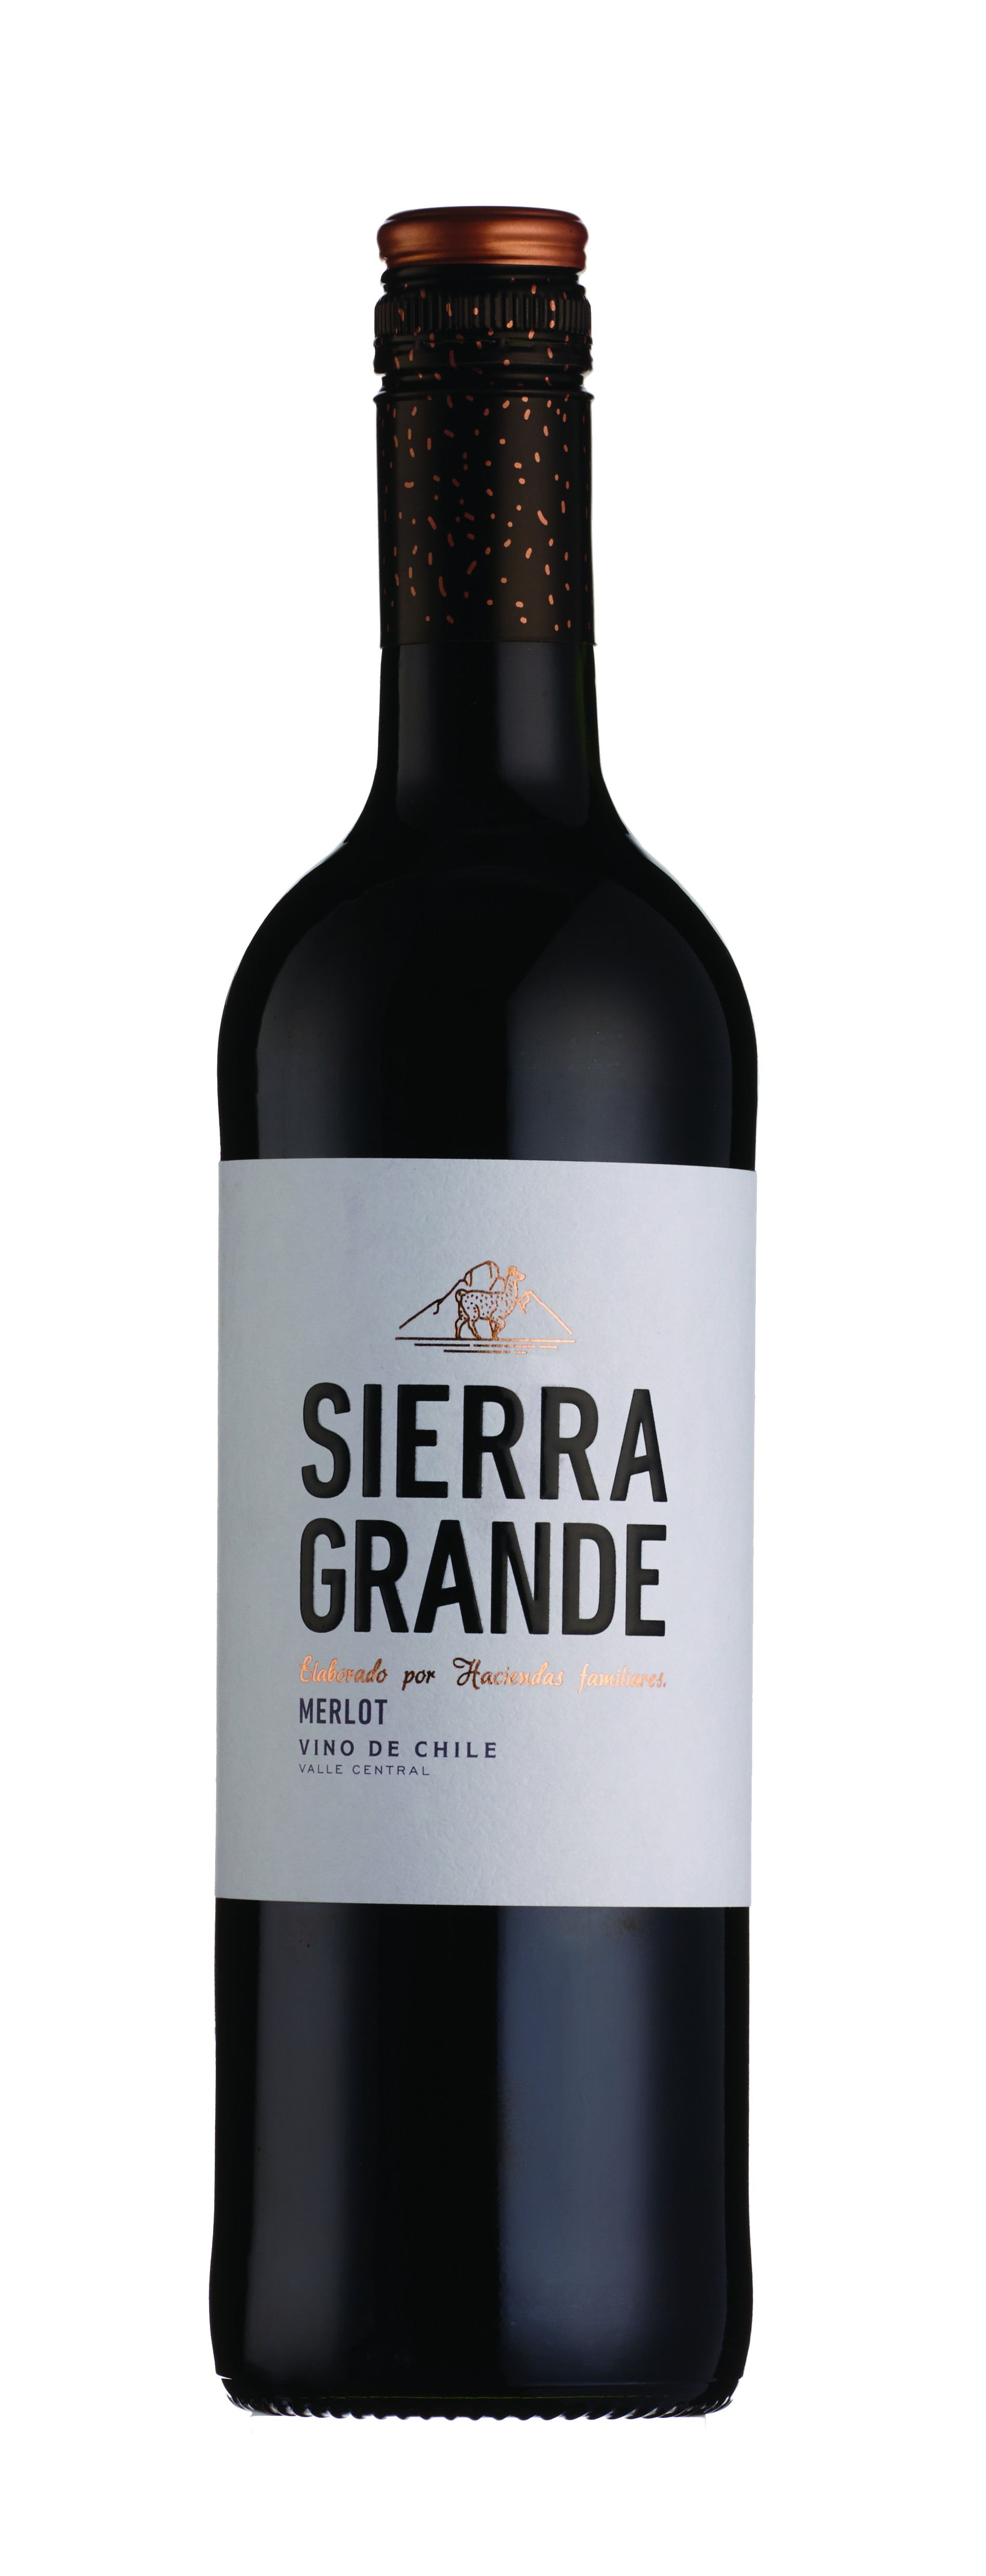 Buy Sierra Grande Merlot 2017 at herculeswines.co.uk